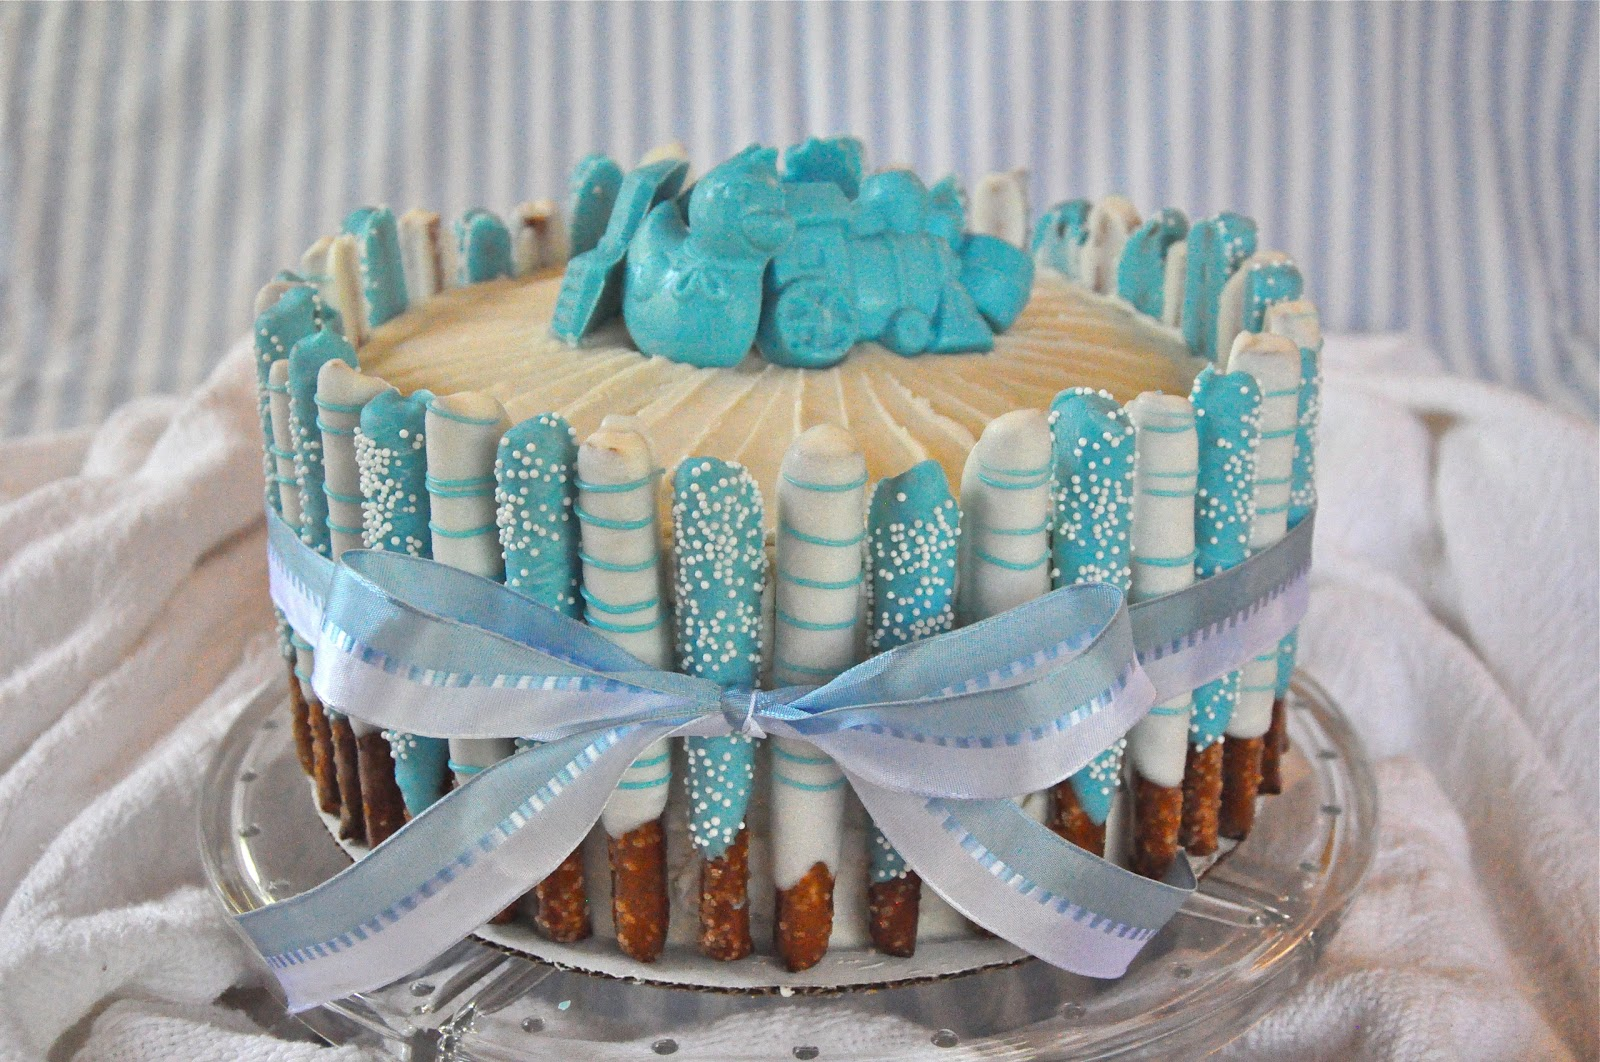 Baby Shower Cake Ideas For A Boy Pinterest : I think I could do that!: Blue Baby Boy Shower Cake